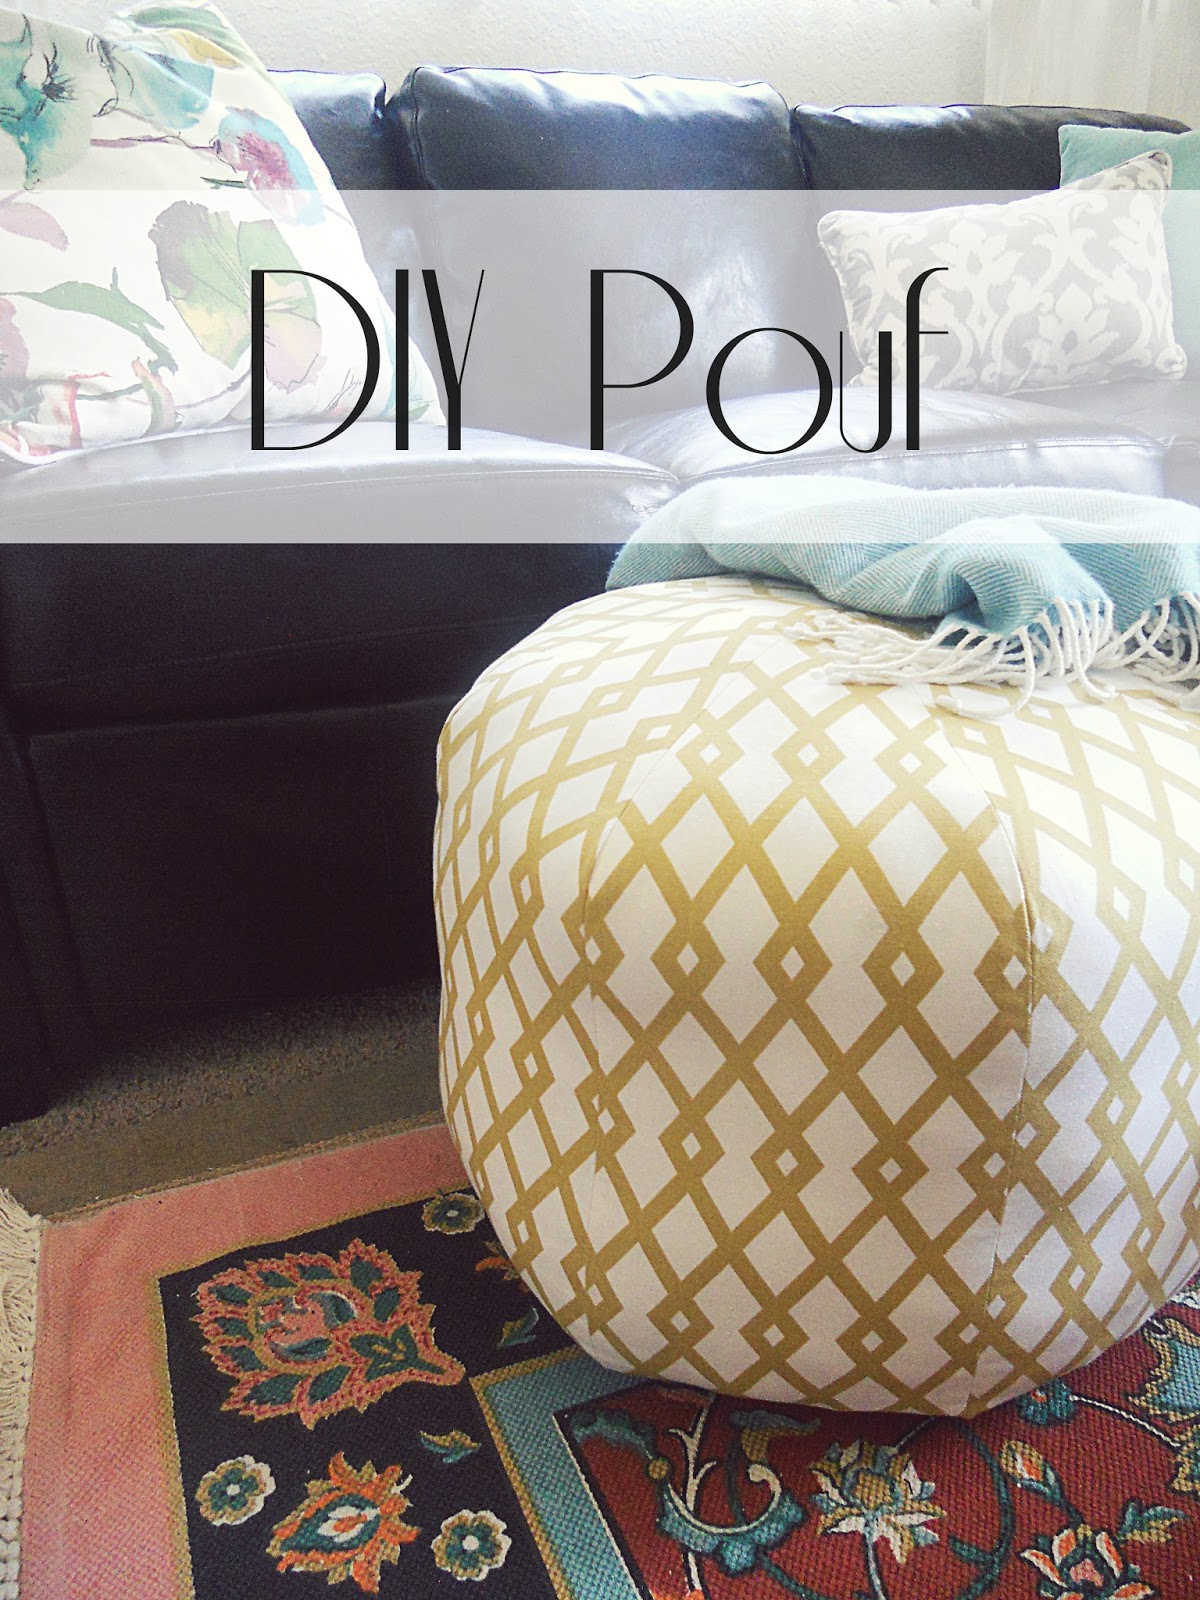 sl designs diy floor pouf. Black Bedroom Furniture Sets. Home Design Ideas